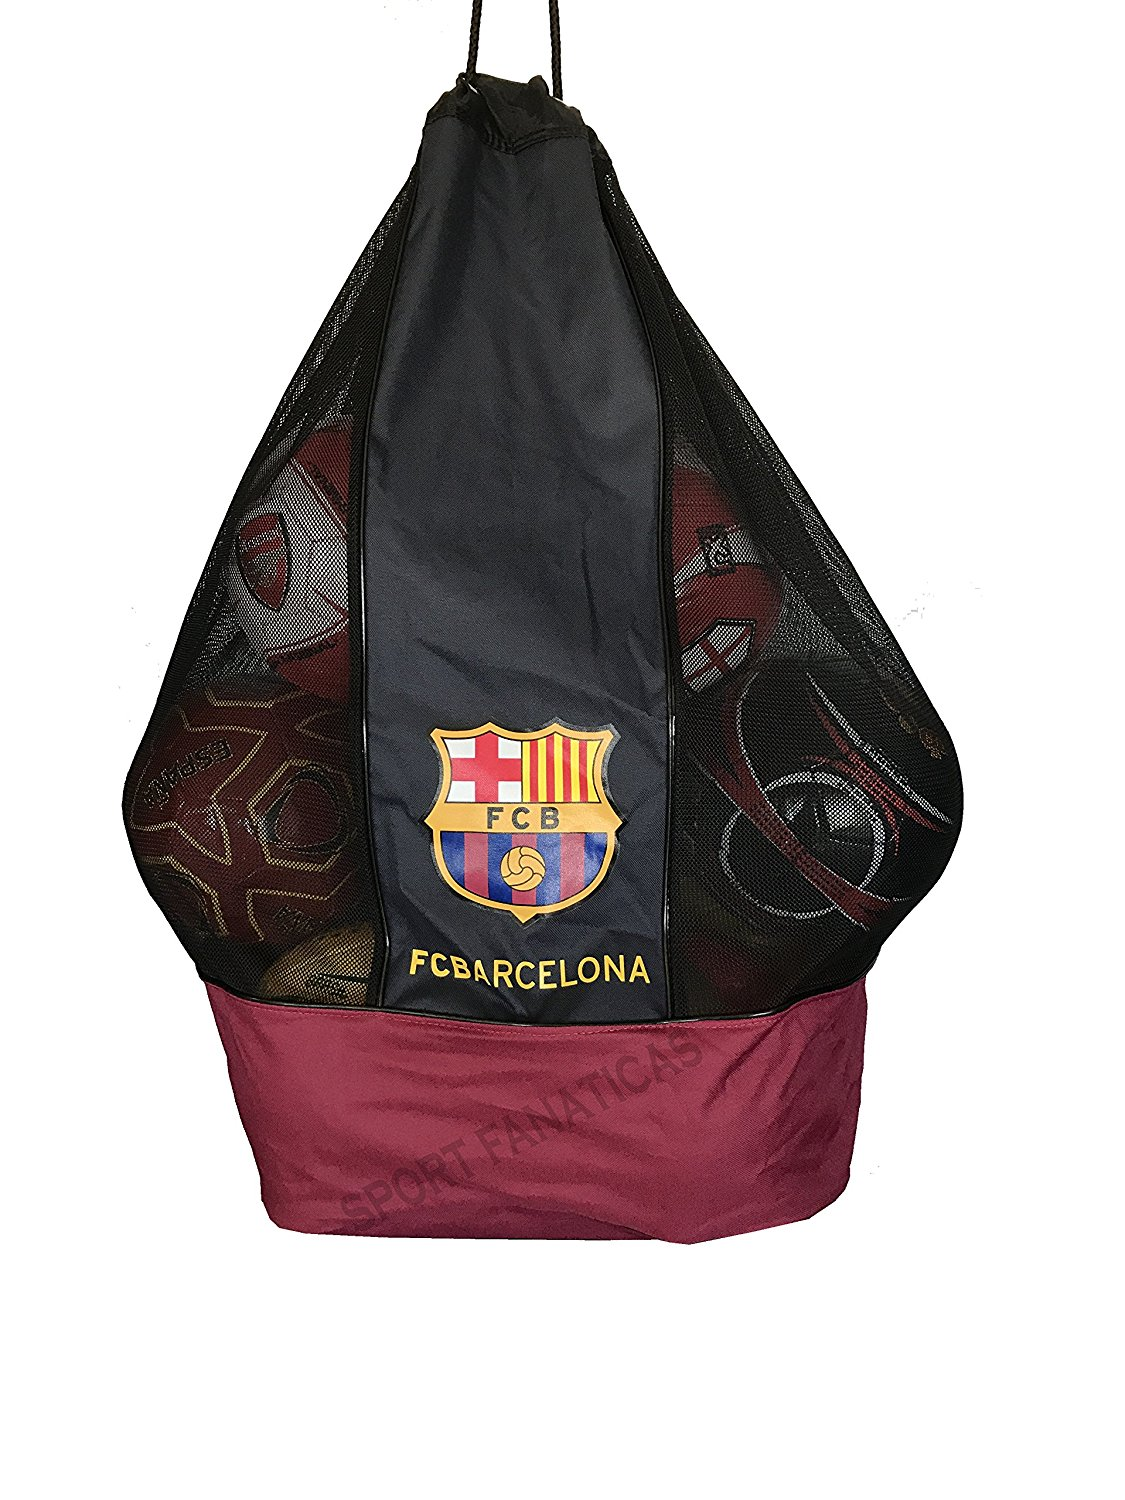 fbcc1c5c7 Get Quotations · FC Barcelona Nylon Mesh Drawstring Sports Equipment Ball  Bag Large Sack with Shoulder Strap for Practice